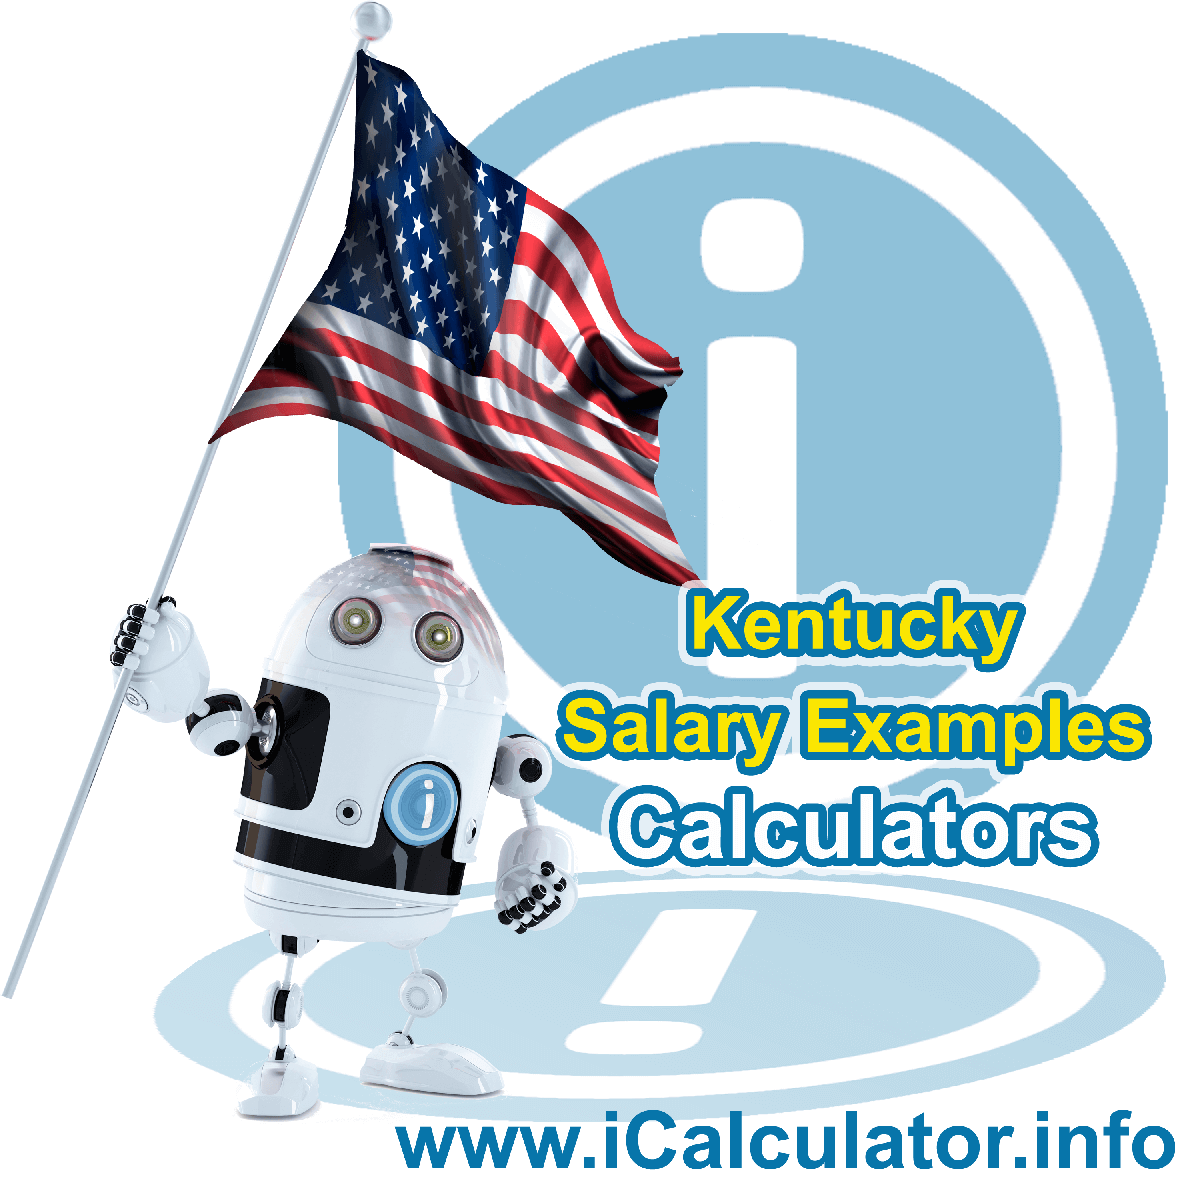 Kentucky Salary Example for $110.00 in 2020 | iCalculator | $110.00 salary example for employee and employer paying Kentucky State tincome taxes. Detailed salary after tax calculation including Kentucky State Tax, Federal State Tax, Medicare Deductions, Social Security, Capital Gains and other income tax and salary deductions complete with supporting Kentucky state tax tables